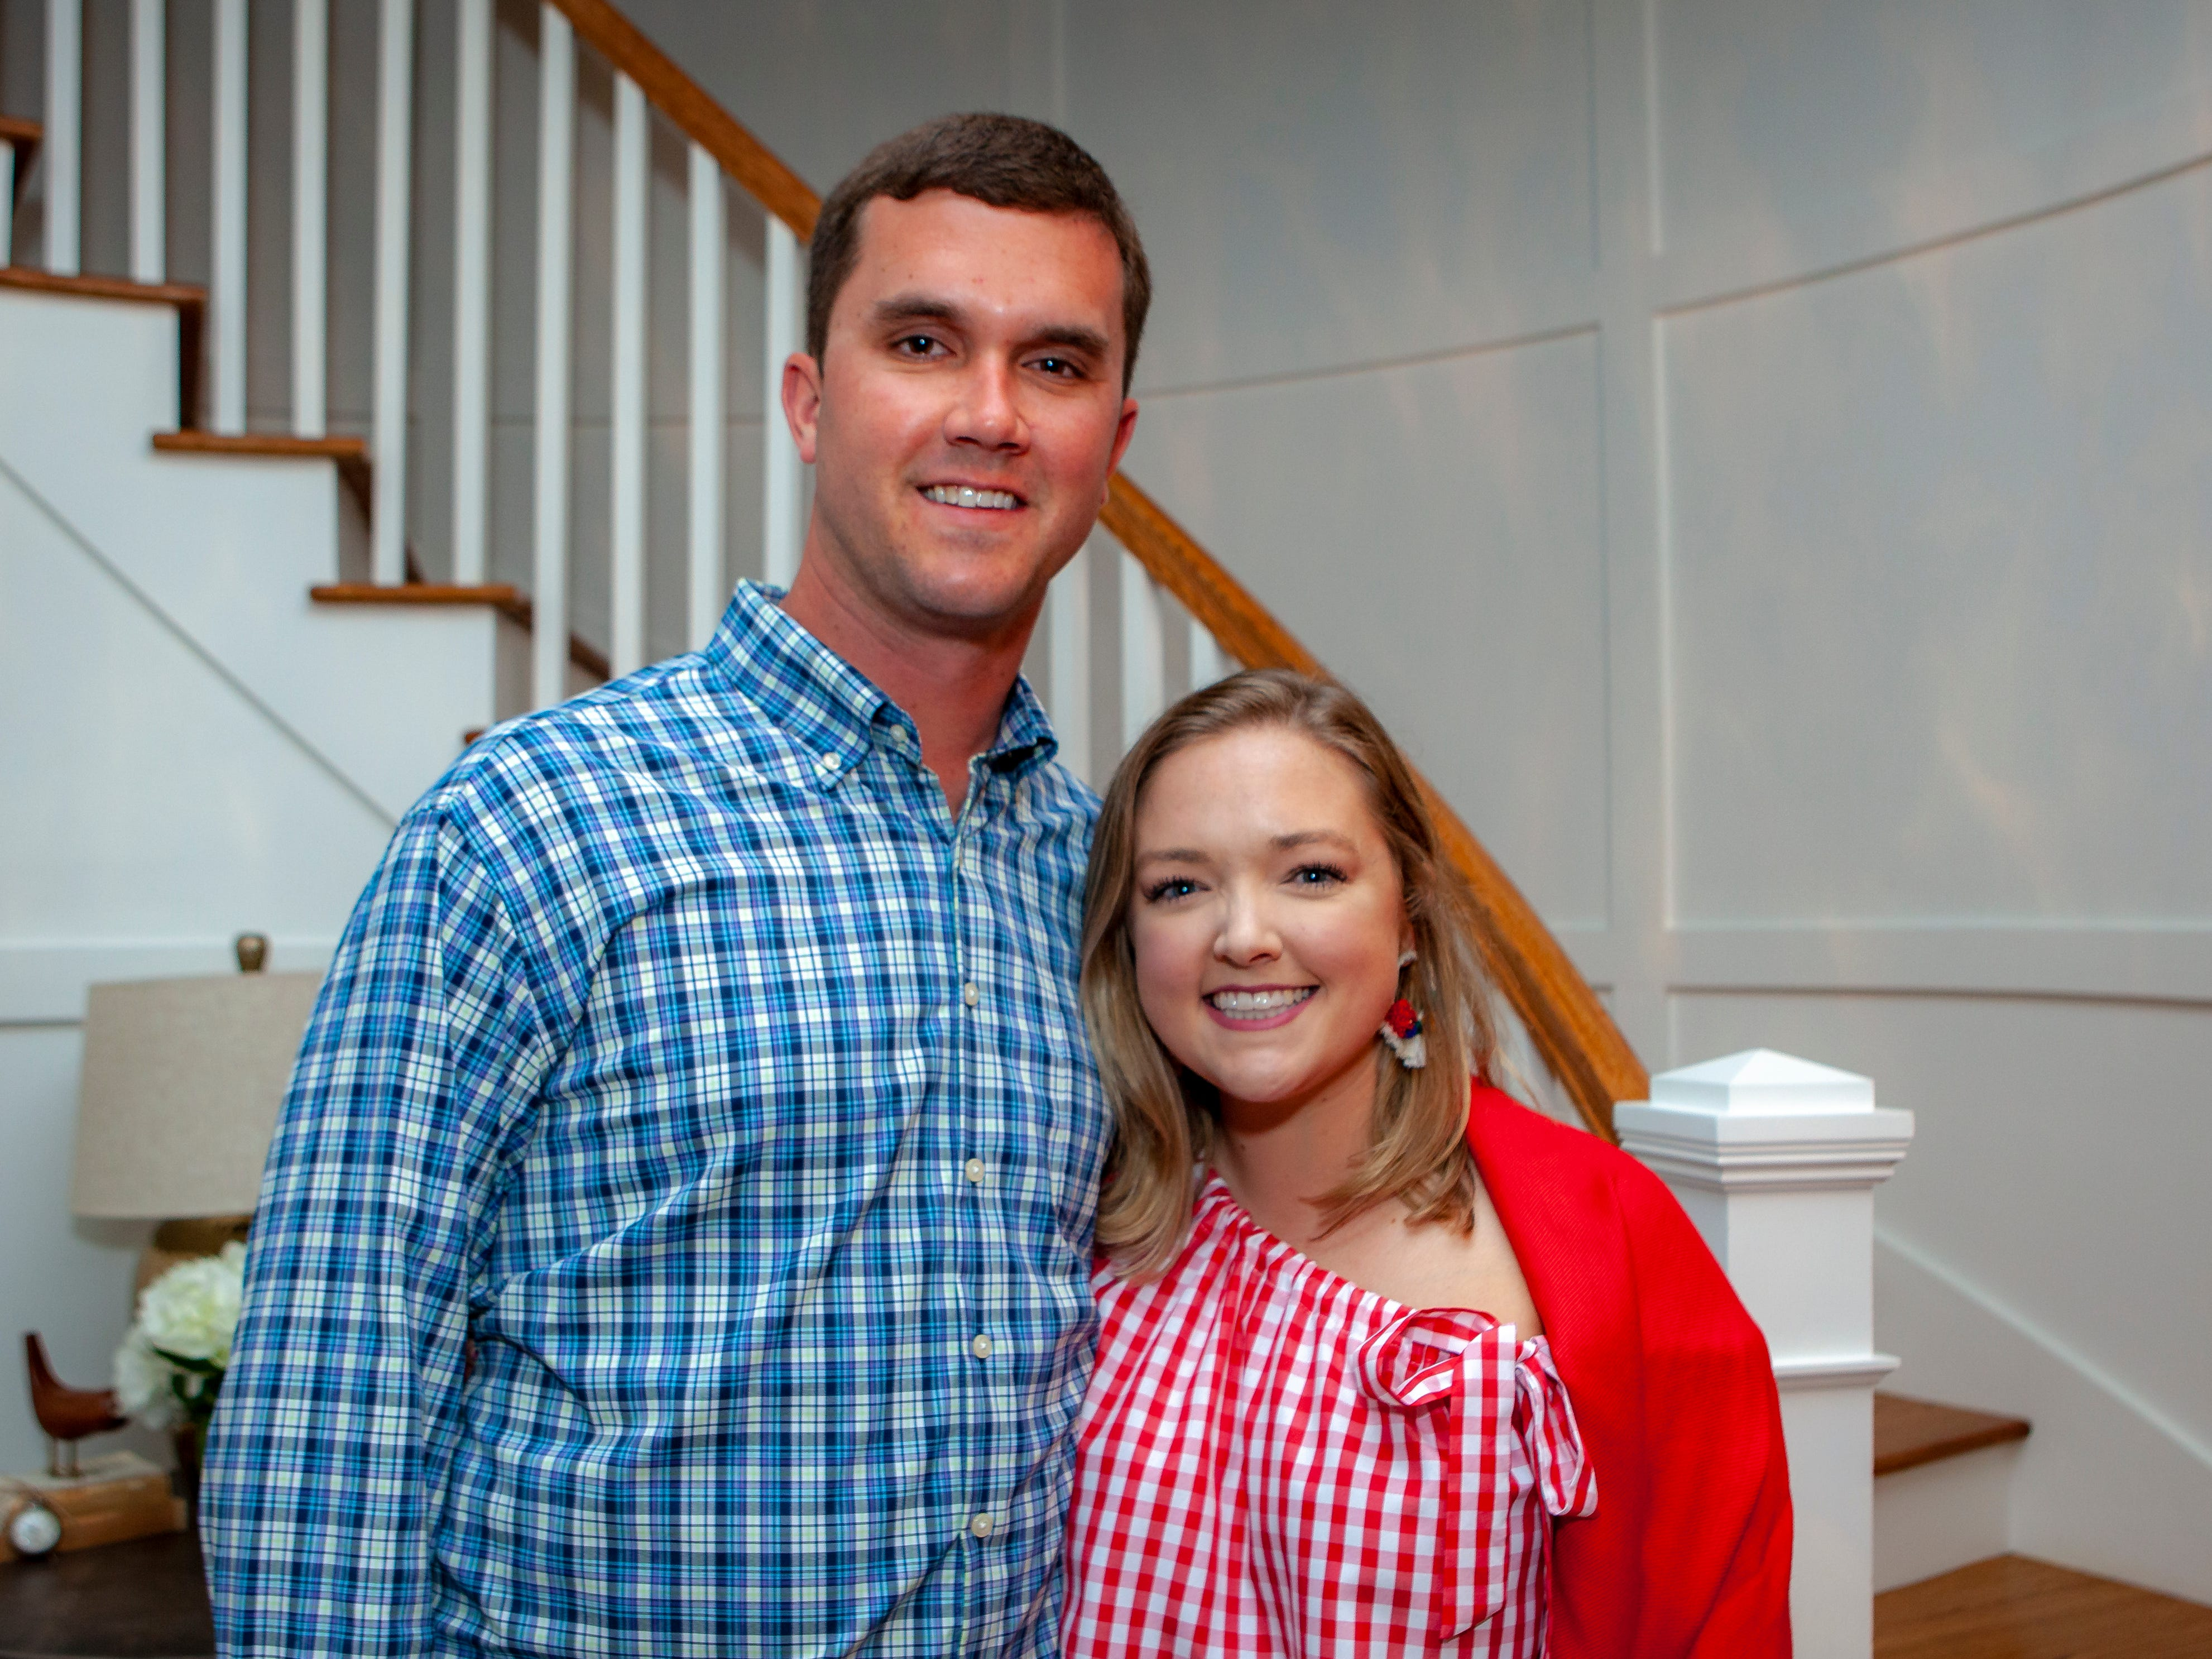 Brandon and Annie Cotter enjoyed a Cajun feast under the stars at United Way's Red, White and Bayou, held Friday, May 10, 2019 at the home of Jimmy & Nikkole Aho.